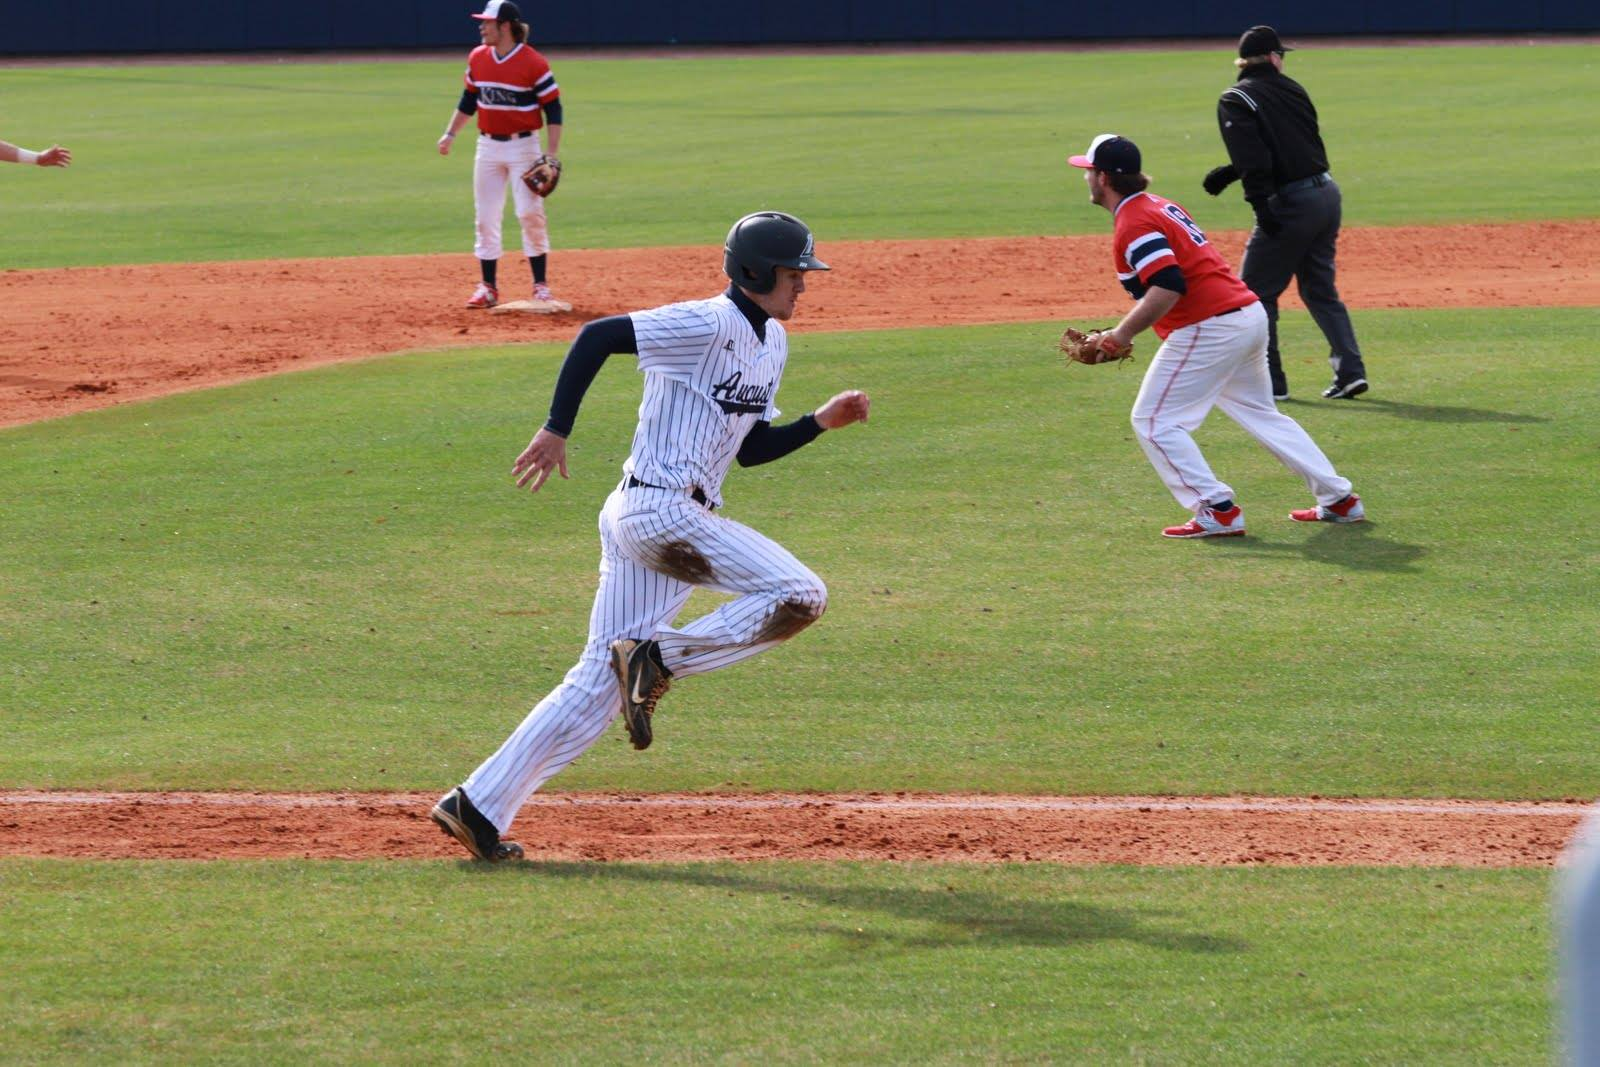 Augusta Downed 16-7 At Francis Marion In Peach Belt Play